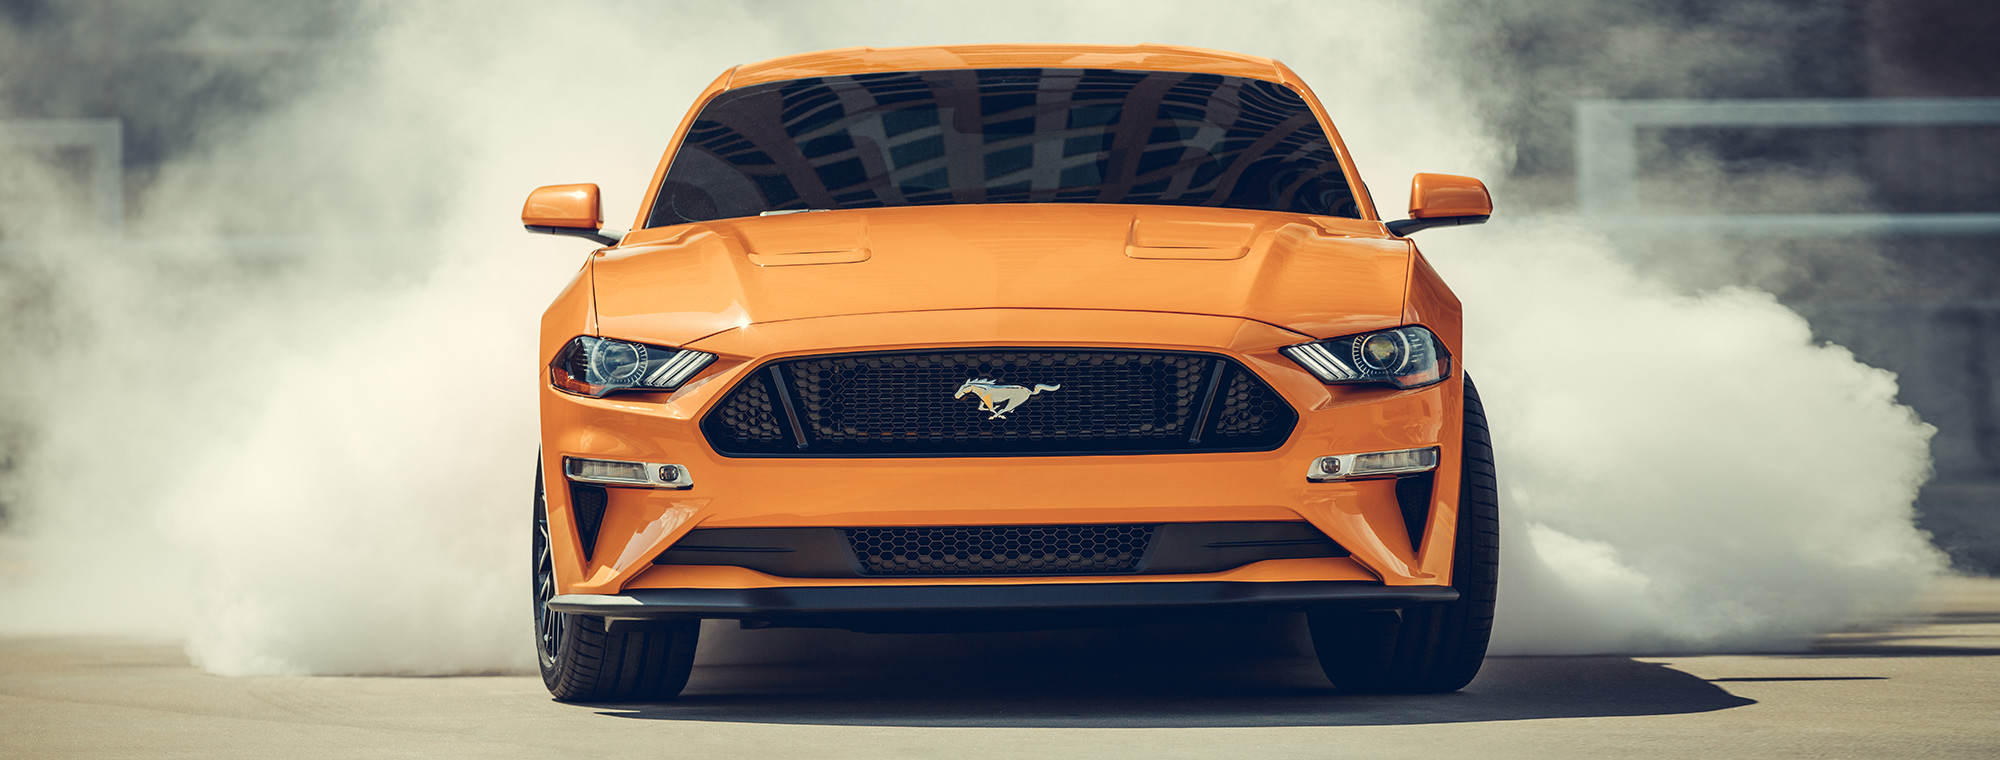 2018 Ford Mustang In Denton Explorer Wiring Harness Color Code For Car